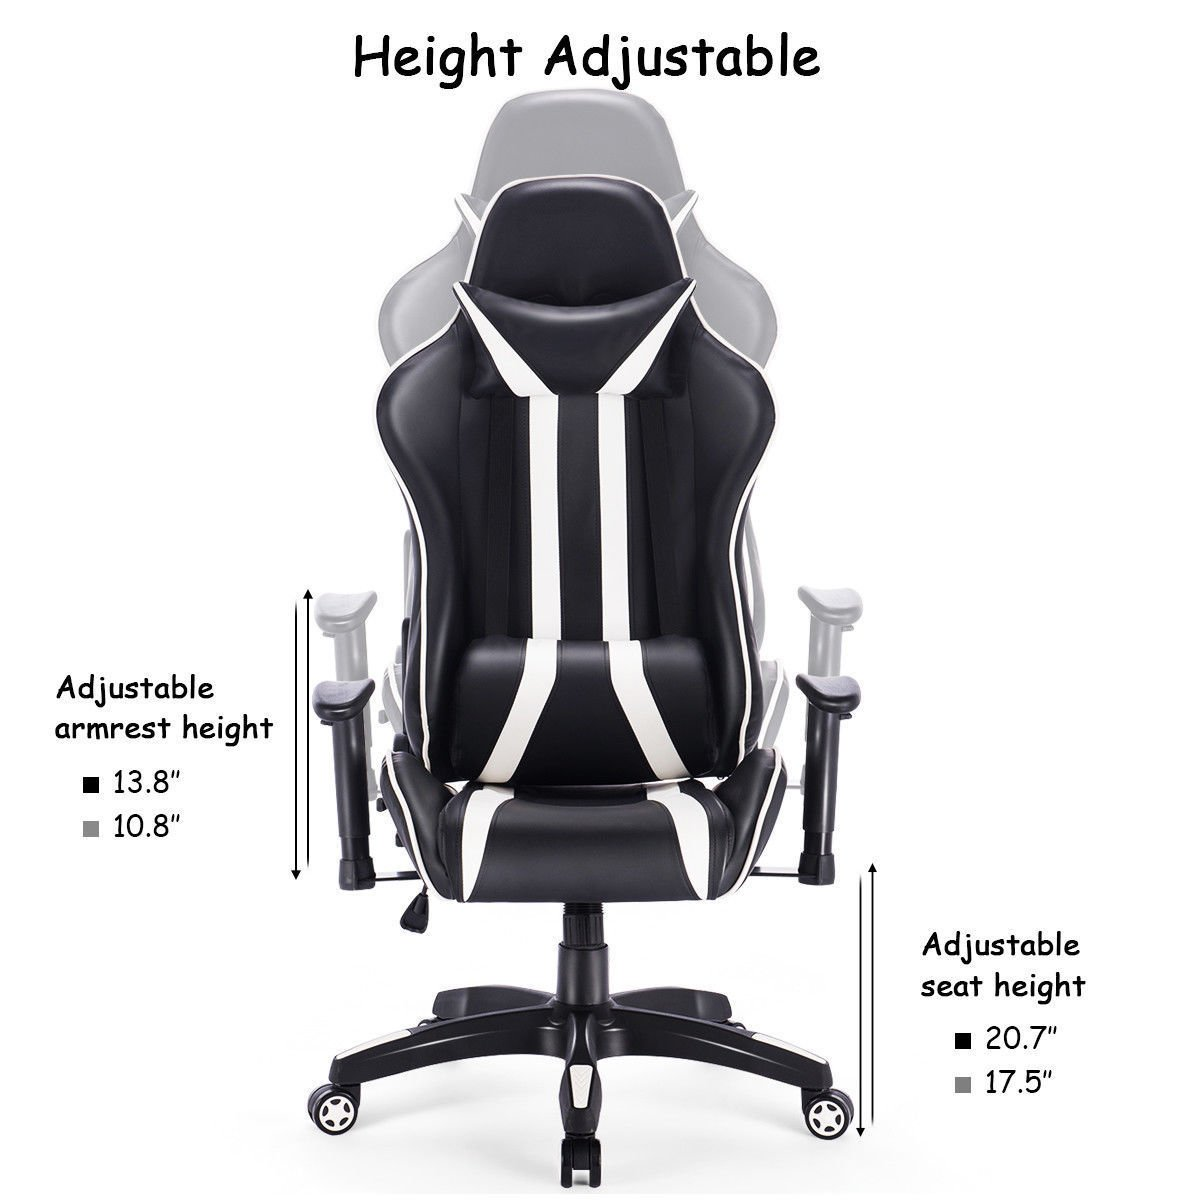 Colibrox gaming chair racing high back reclining chair computer swivel office desk taskvideo game chairs living room accent chairsnew racing style